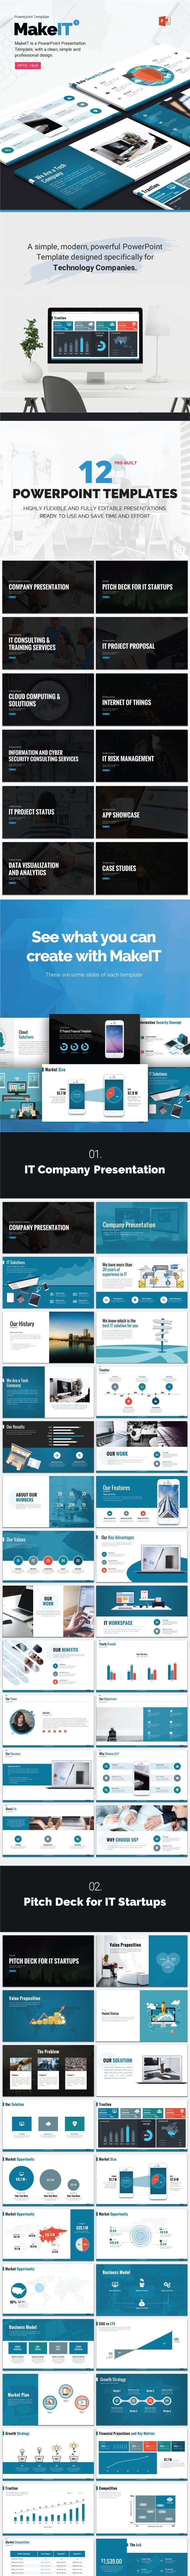 MakeIT-PowerPoint Template - Pitch Deck PowerPoint Templates